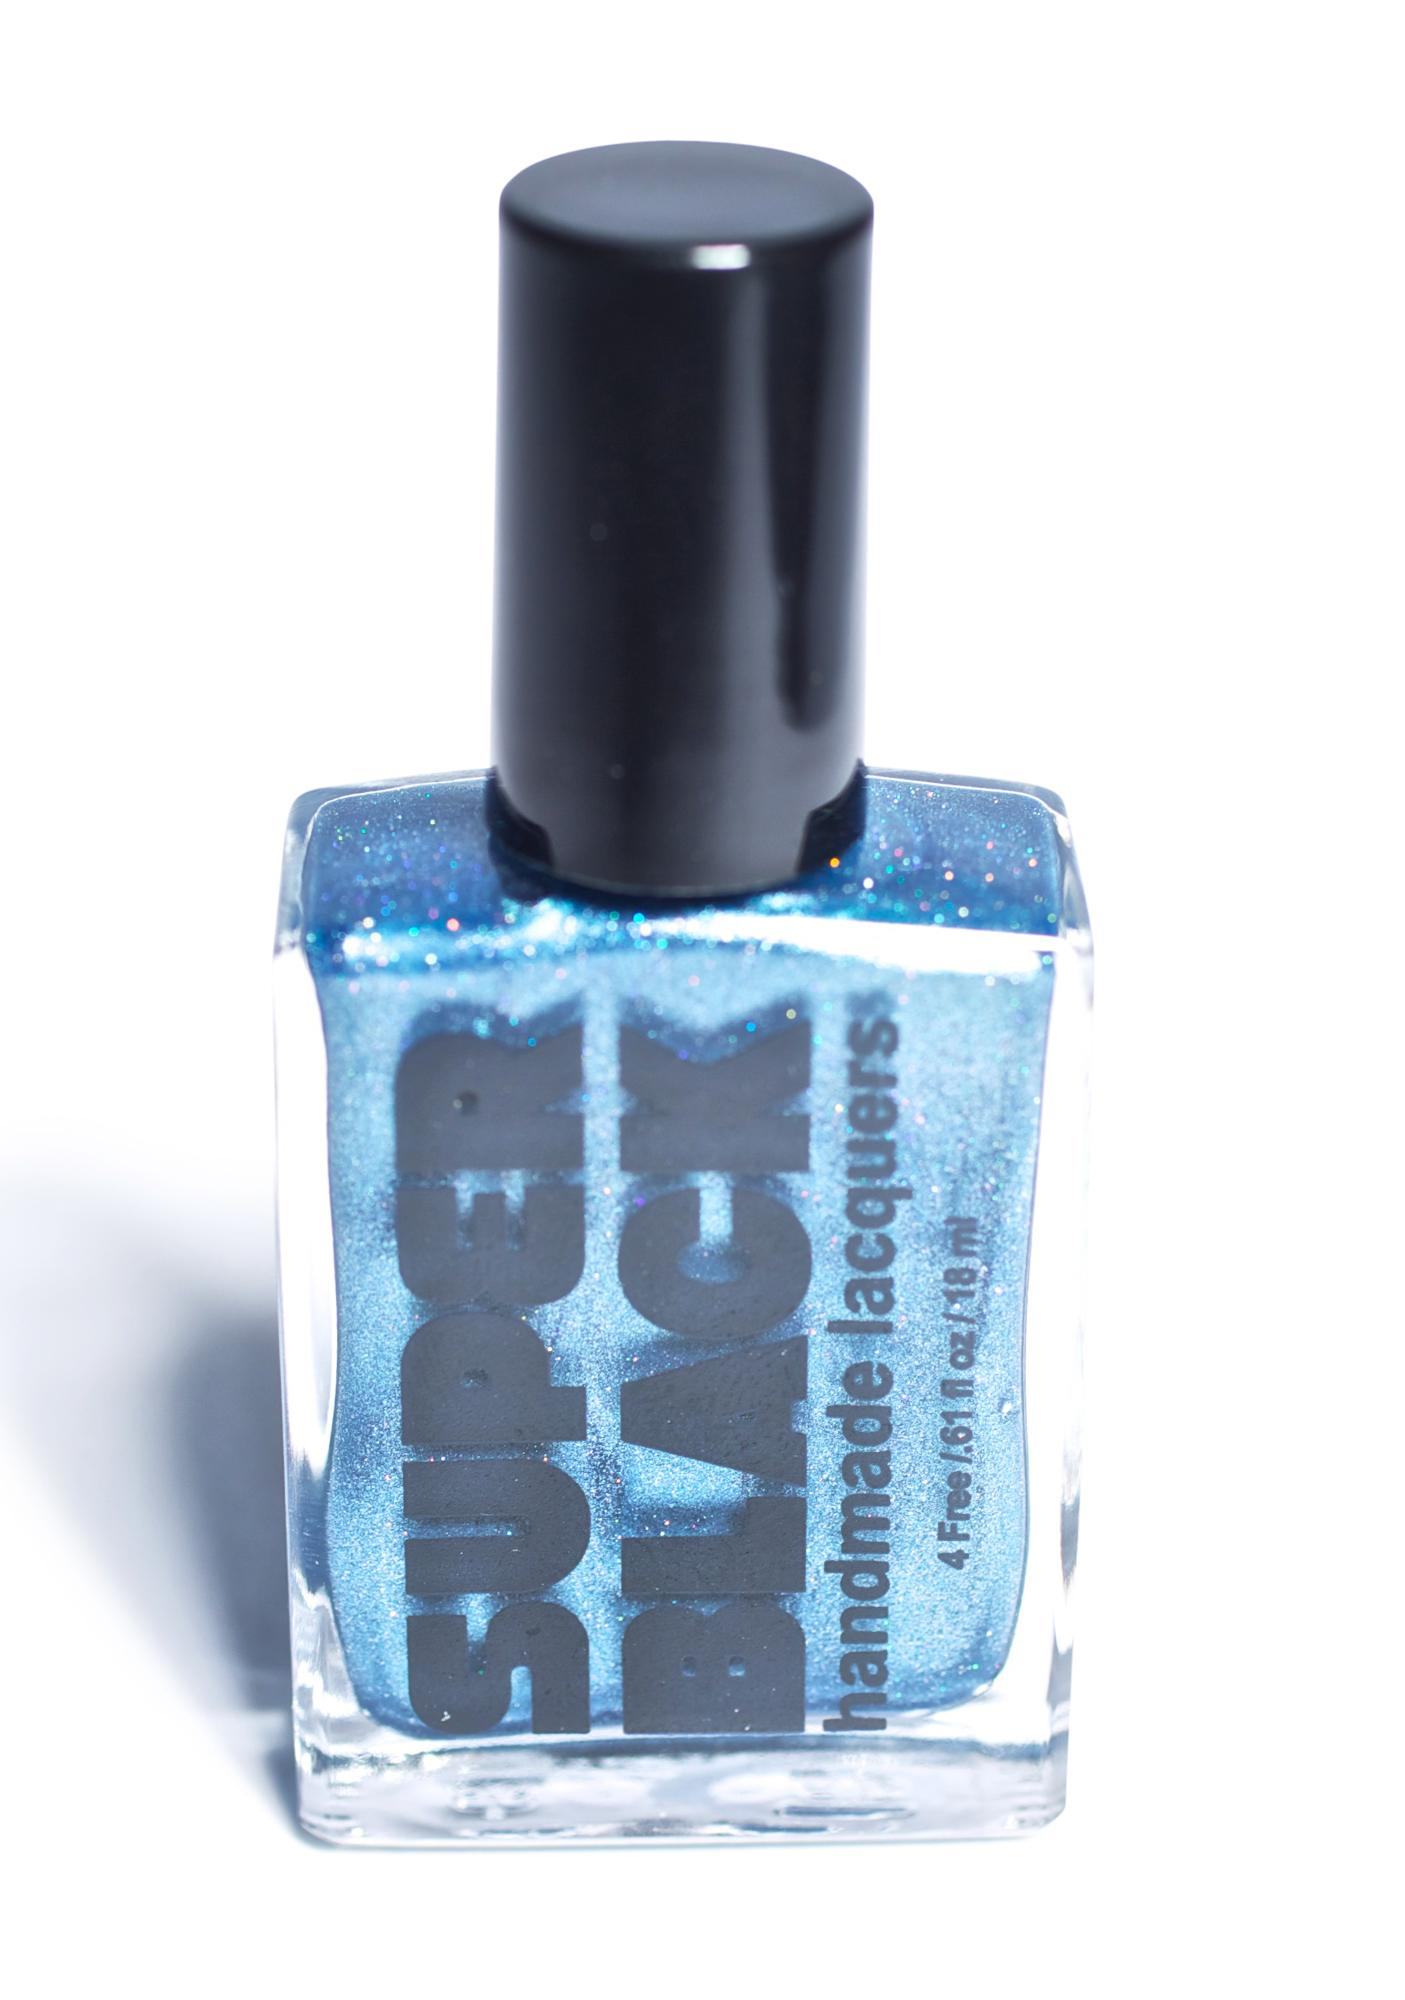 SUPER BLACK Frostbite Nail Polish